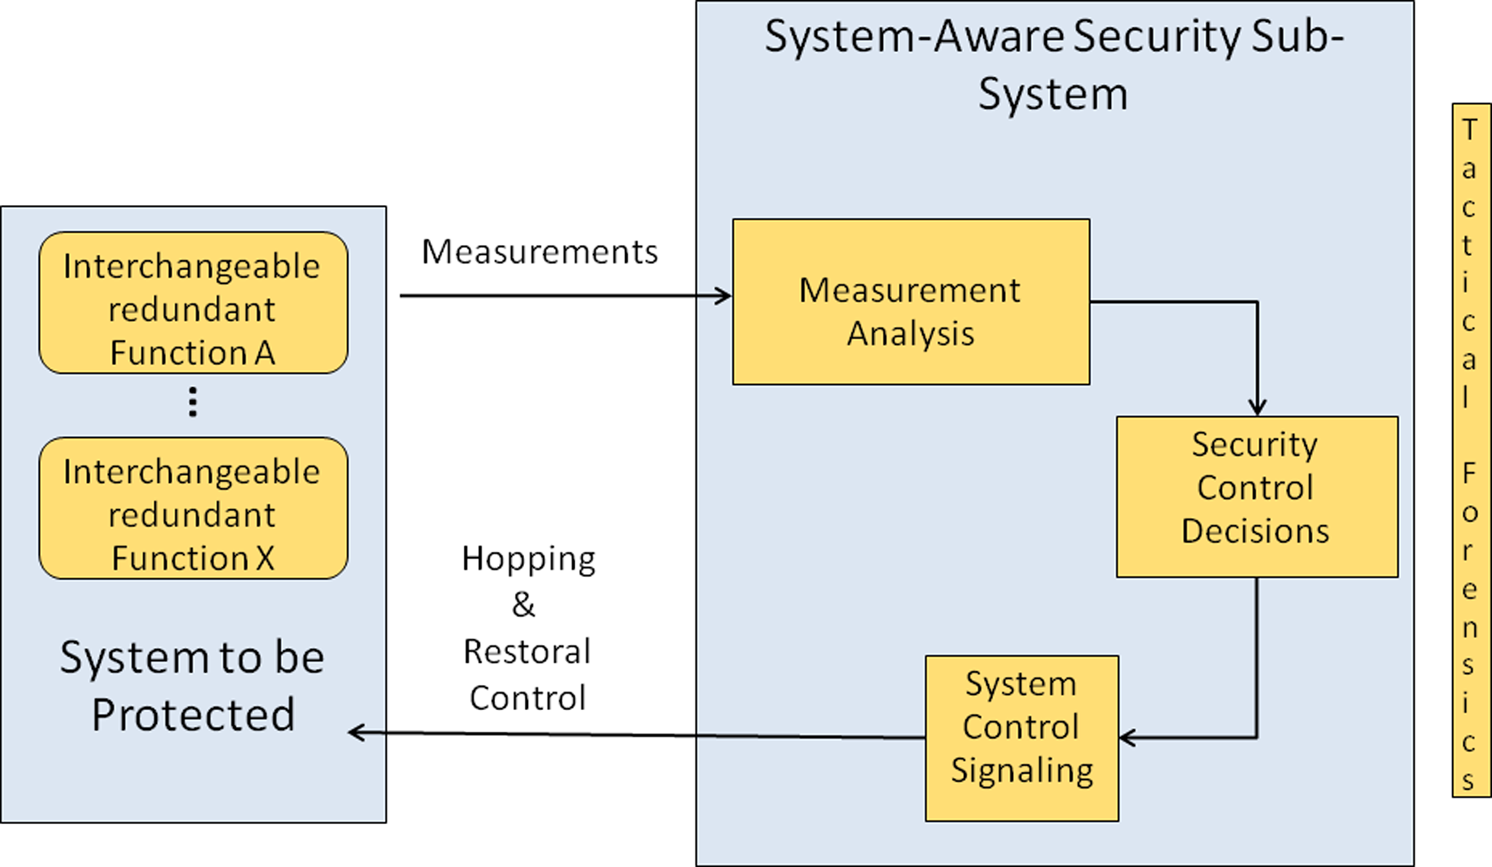 A SYSTEM-AWARE CYBER SECURITY ARCHITECTURE 227 Science Board, 2005; DoD, 2009].